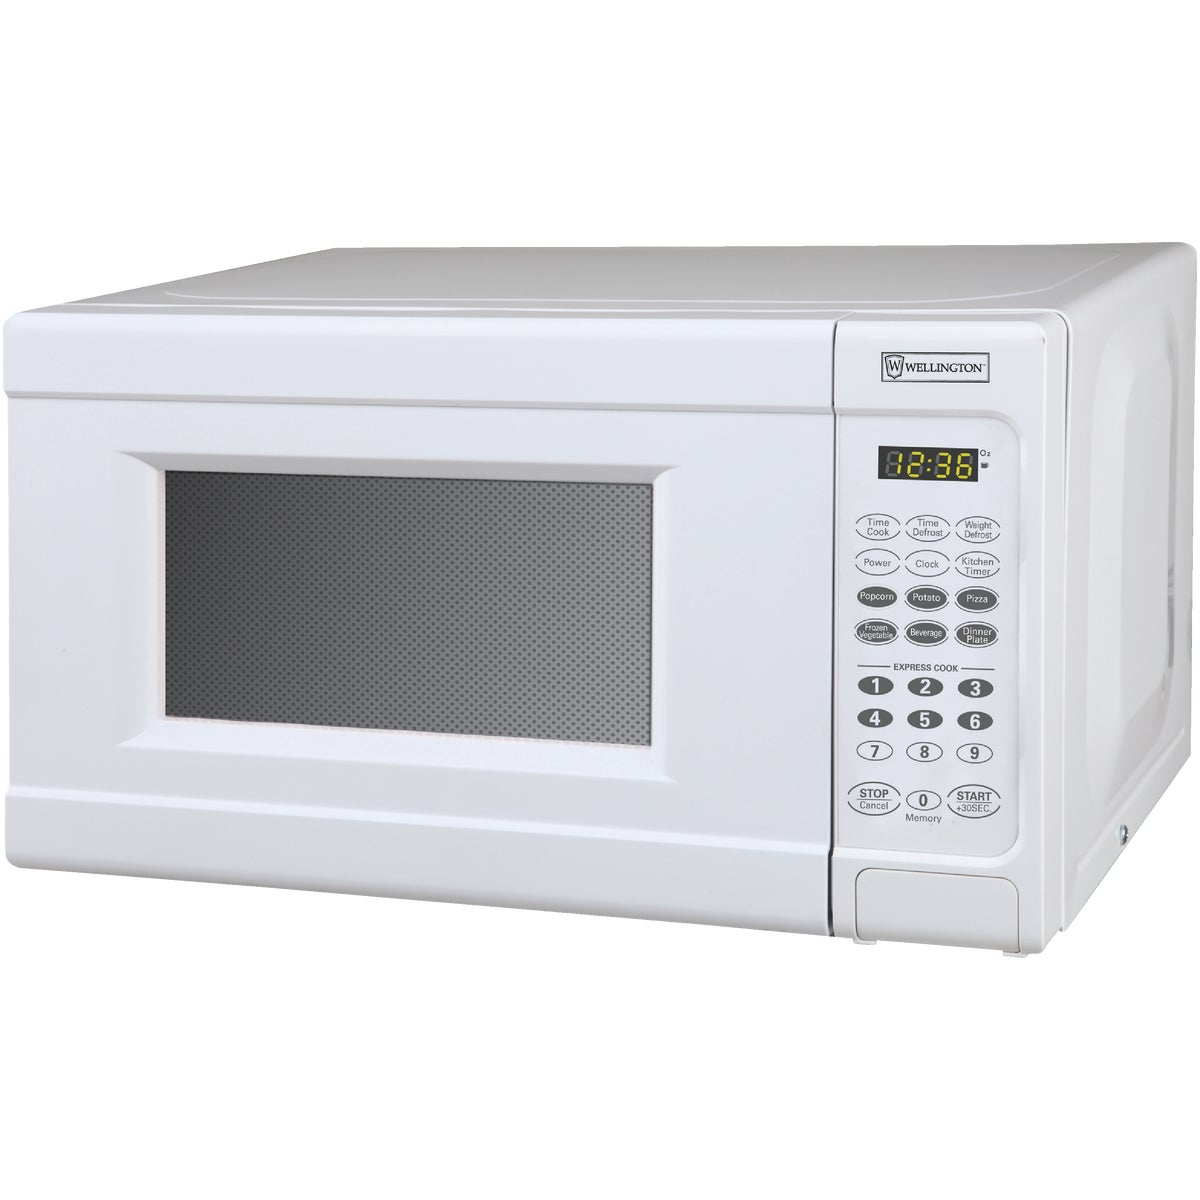 WHITE 0.7CUFT MICROWAVE